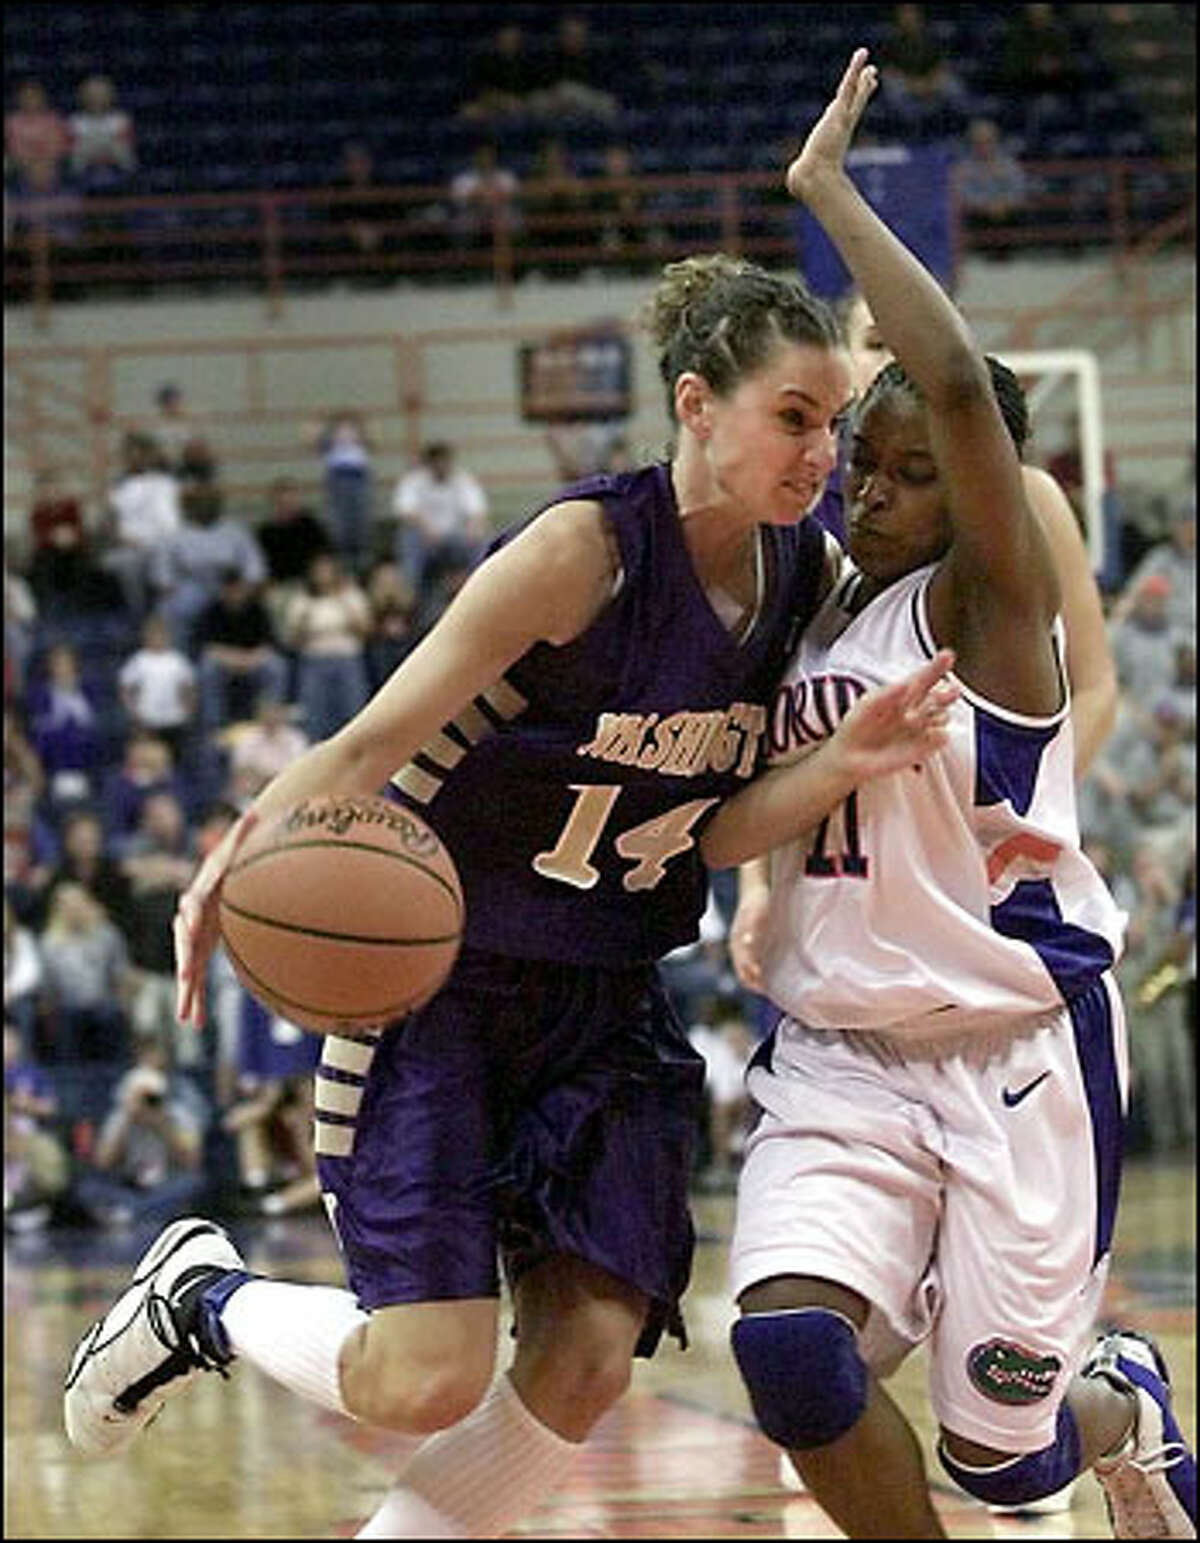 Megan Franza drives against Brandi McCain to the basket in UW's win over the University of Florida and a trip to the sweet 16.